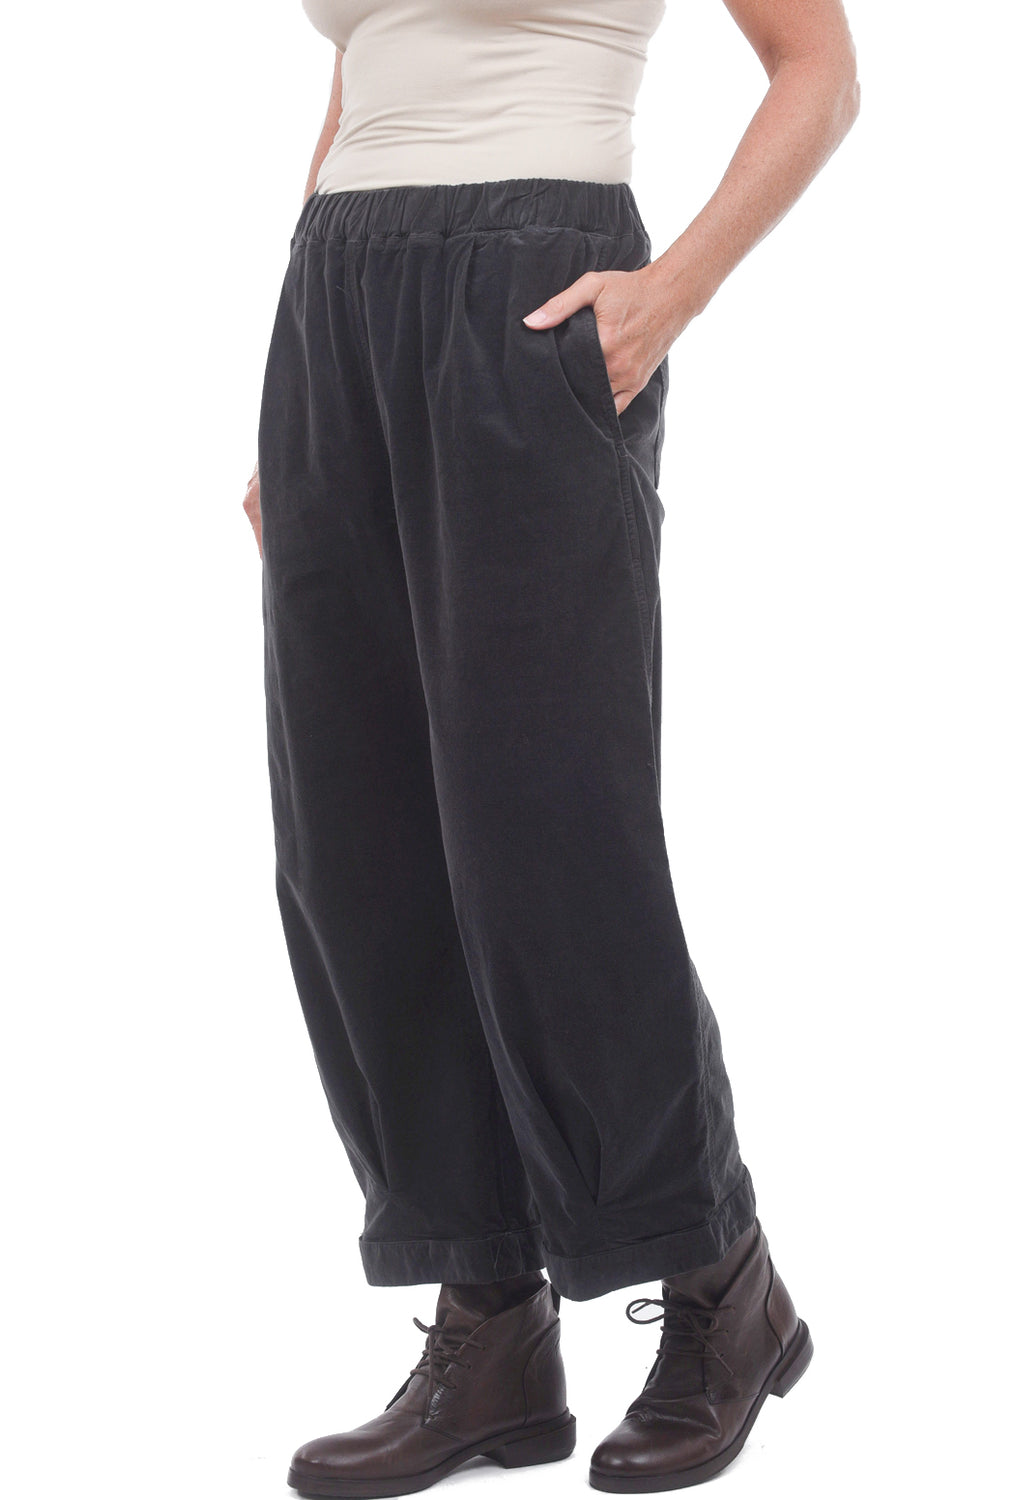 Cut Loose Mini-Cord Pleated Pant, Pavement